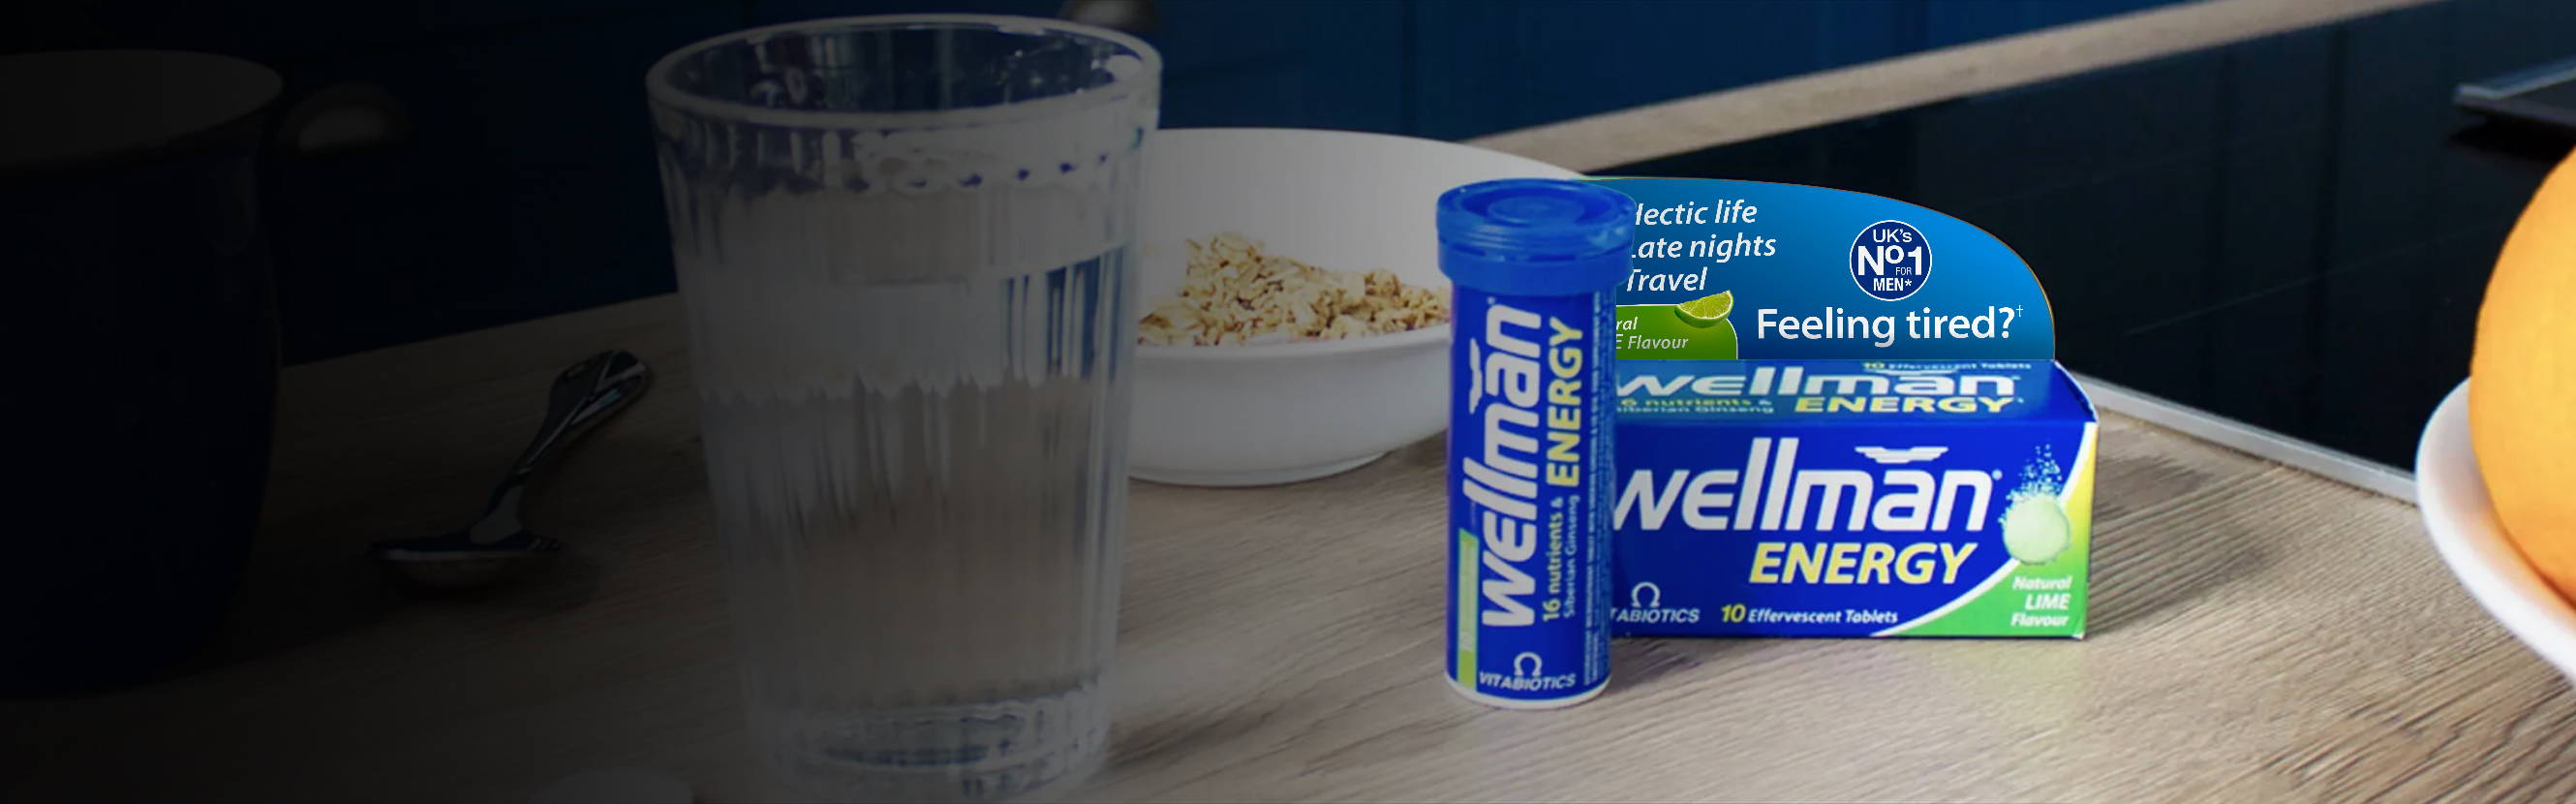 Late nights can be followed by great mornings. That's because Wellman Energy has been expertly formulated to support your nutrition, no matter how demanding your lifestyle. So you can stay at your best, even when you're putting your body through its paces.